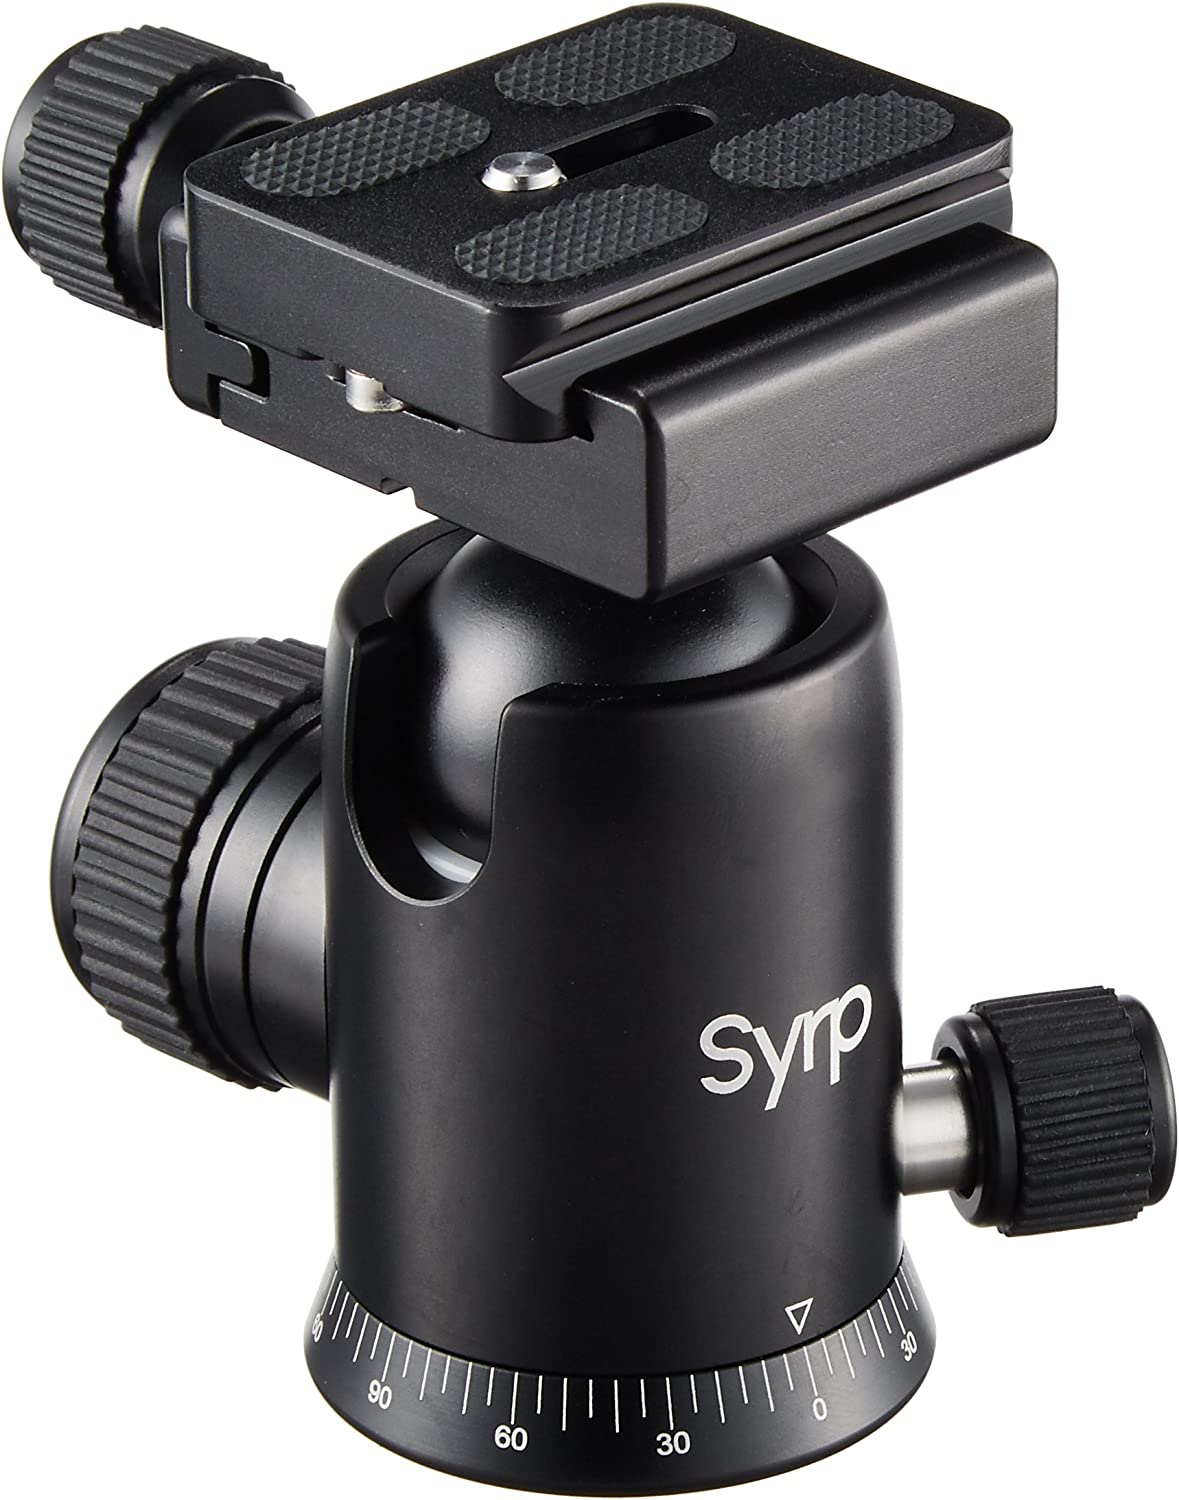 Syrp Ballhead, with a Quick Release Plate, 3/8 UNC Thread and 2 Bubble Levels, Compatible with Most DSLR, Mirrorless - Aluminium